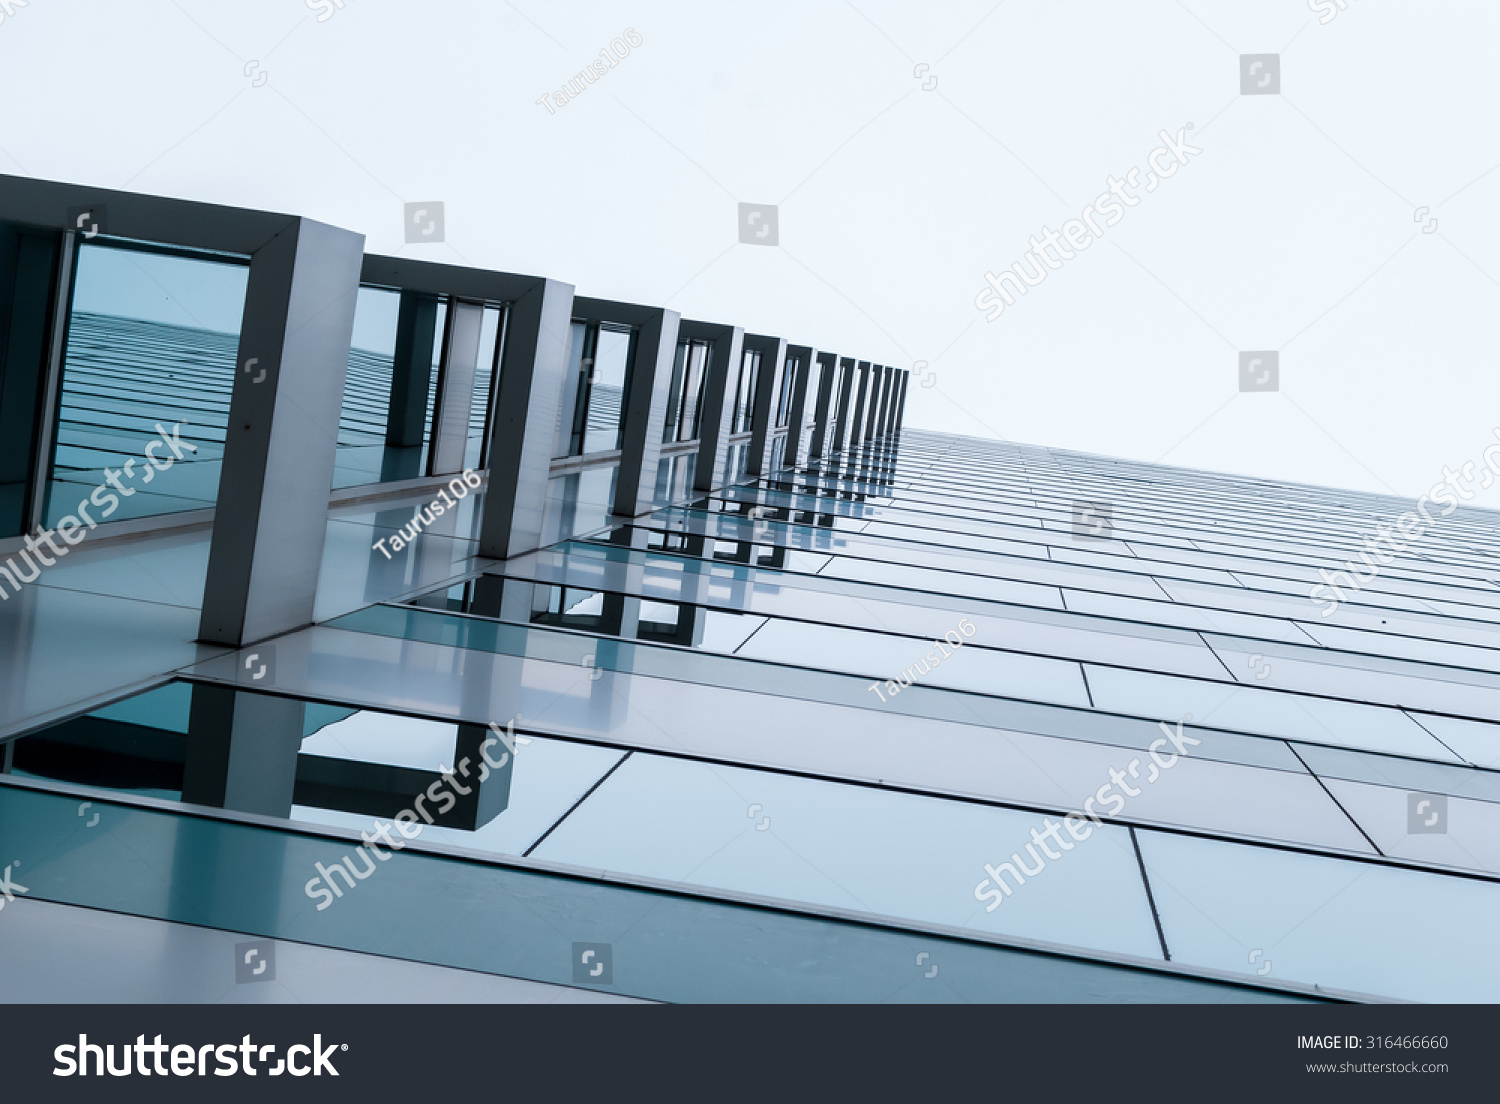 urban geometry looking glass building modern stock photo 316466660 shutterstock. Black Bedroom Furniture Sets. Home Design Ideas